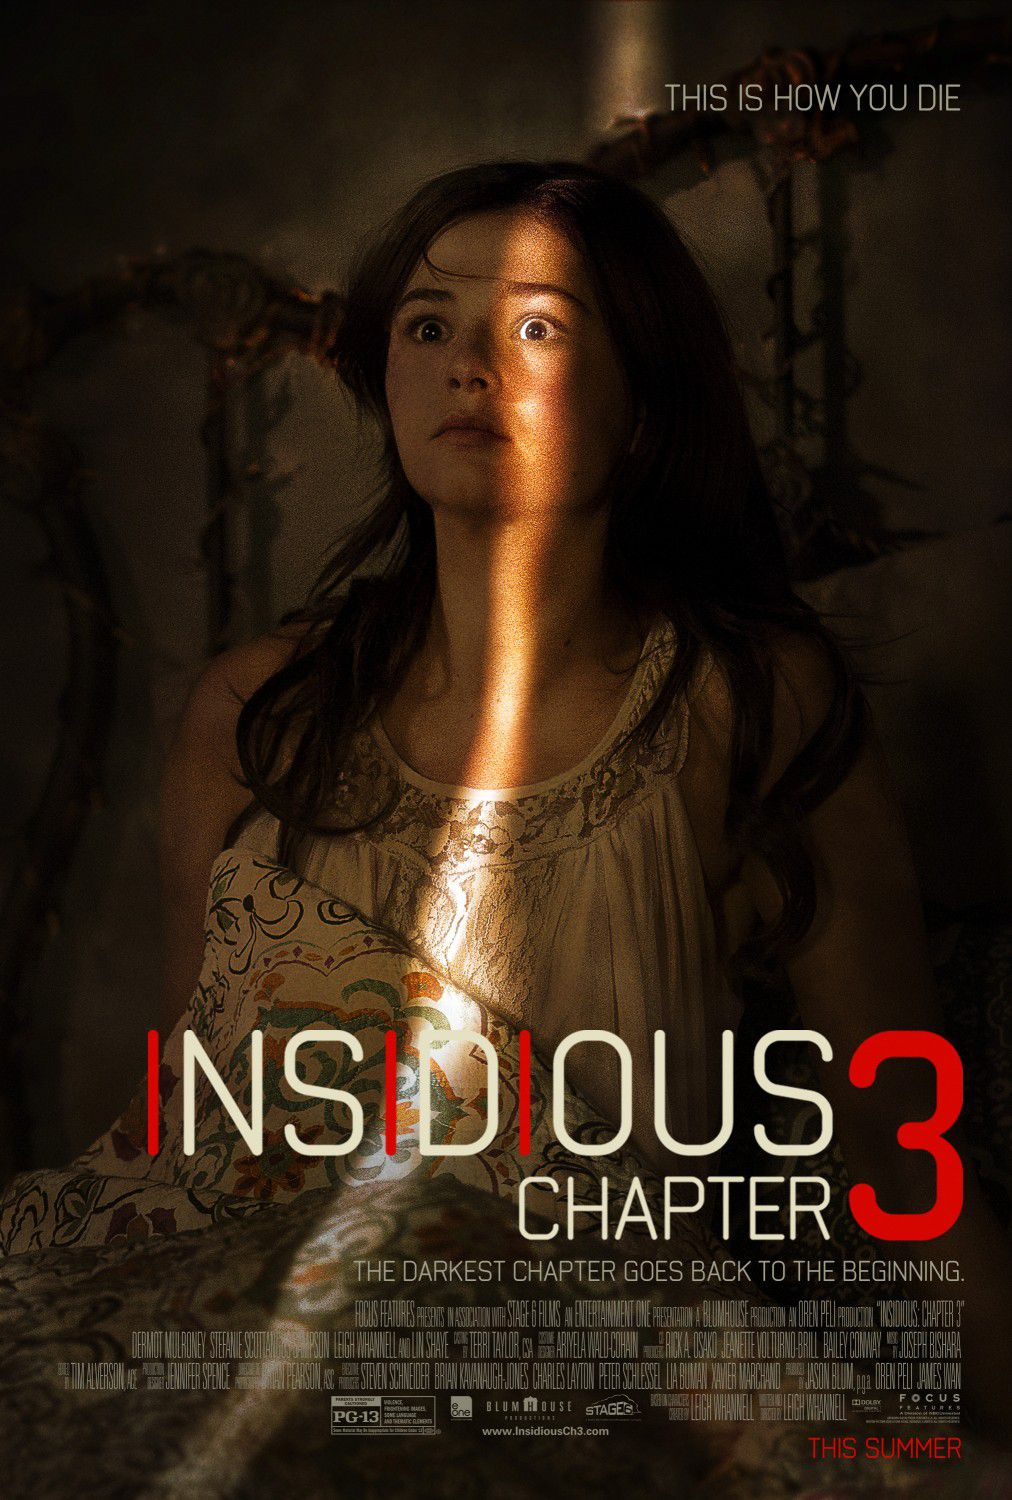 Insidious chapter 3 - horror poster